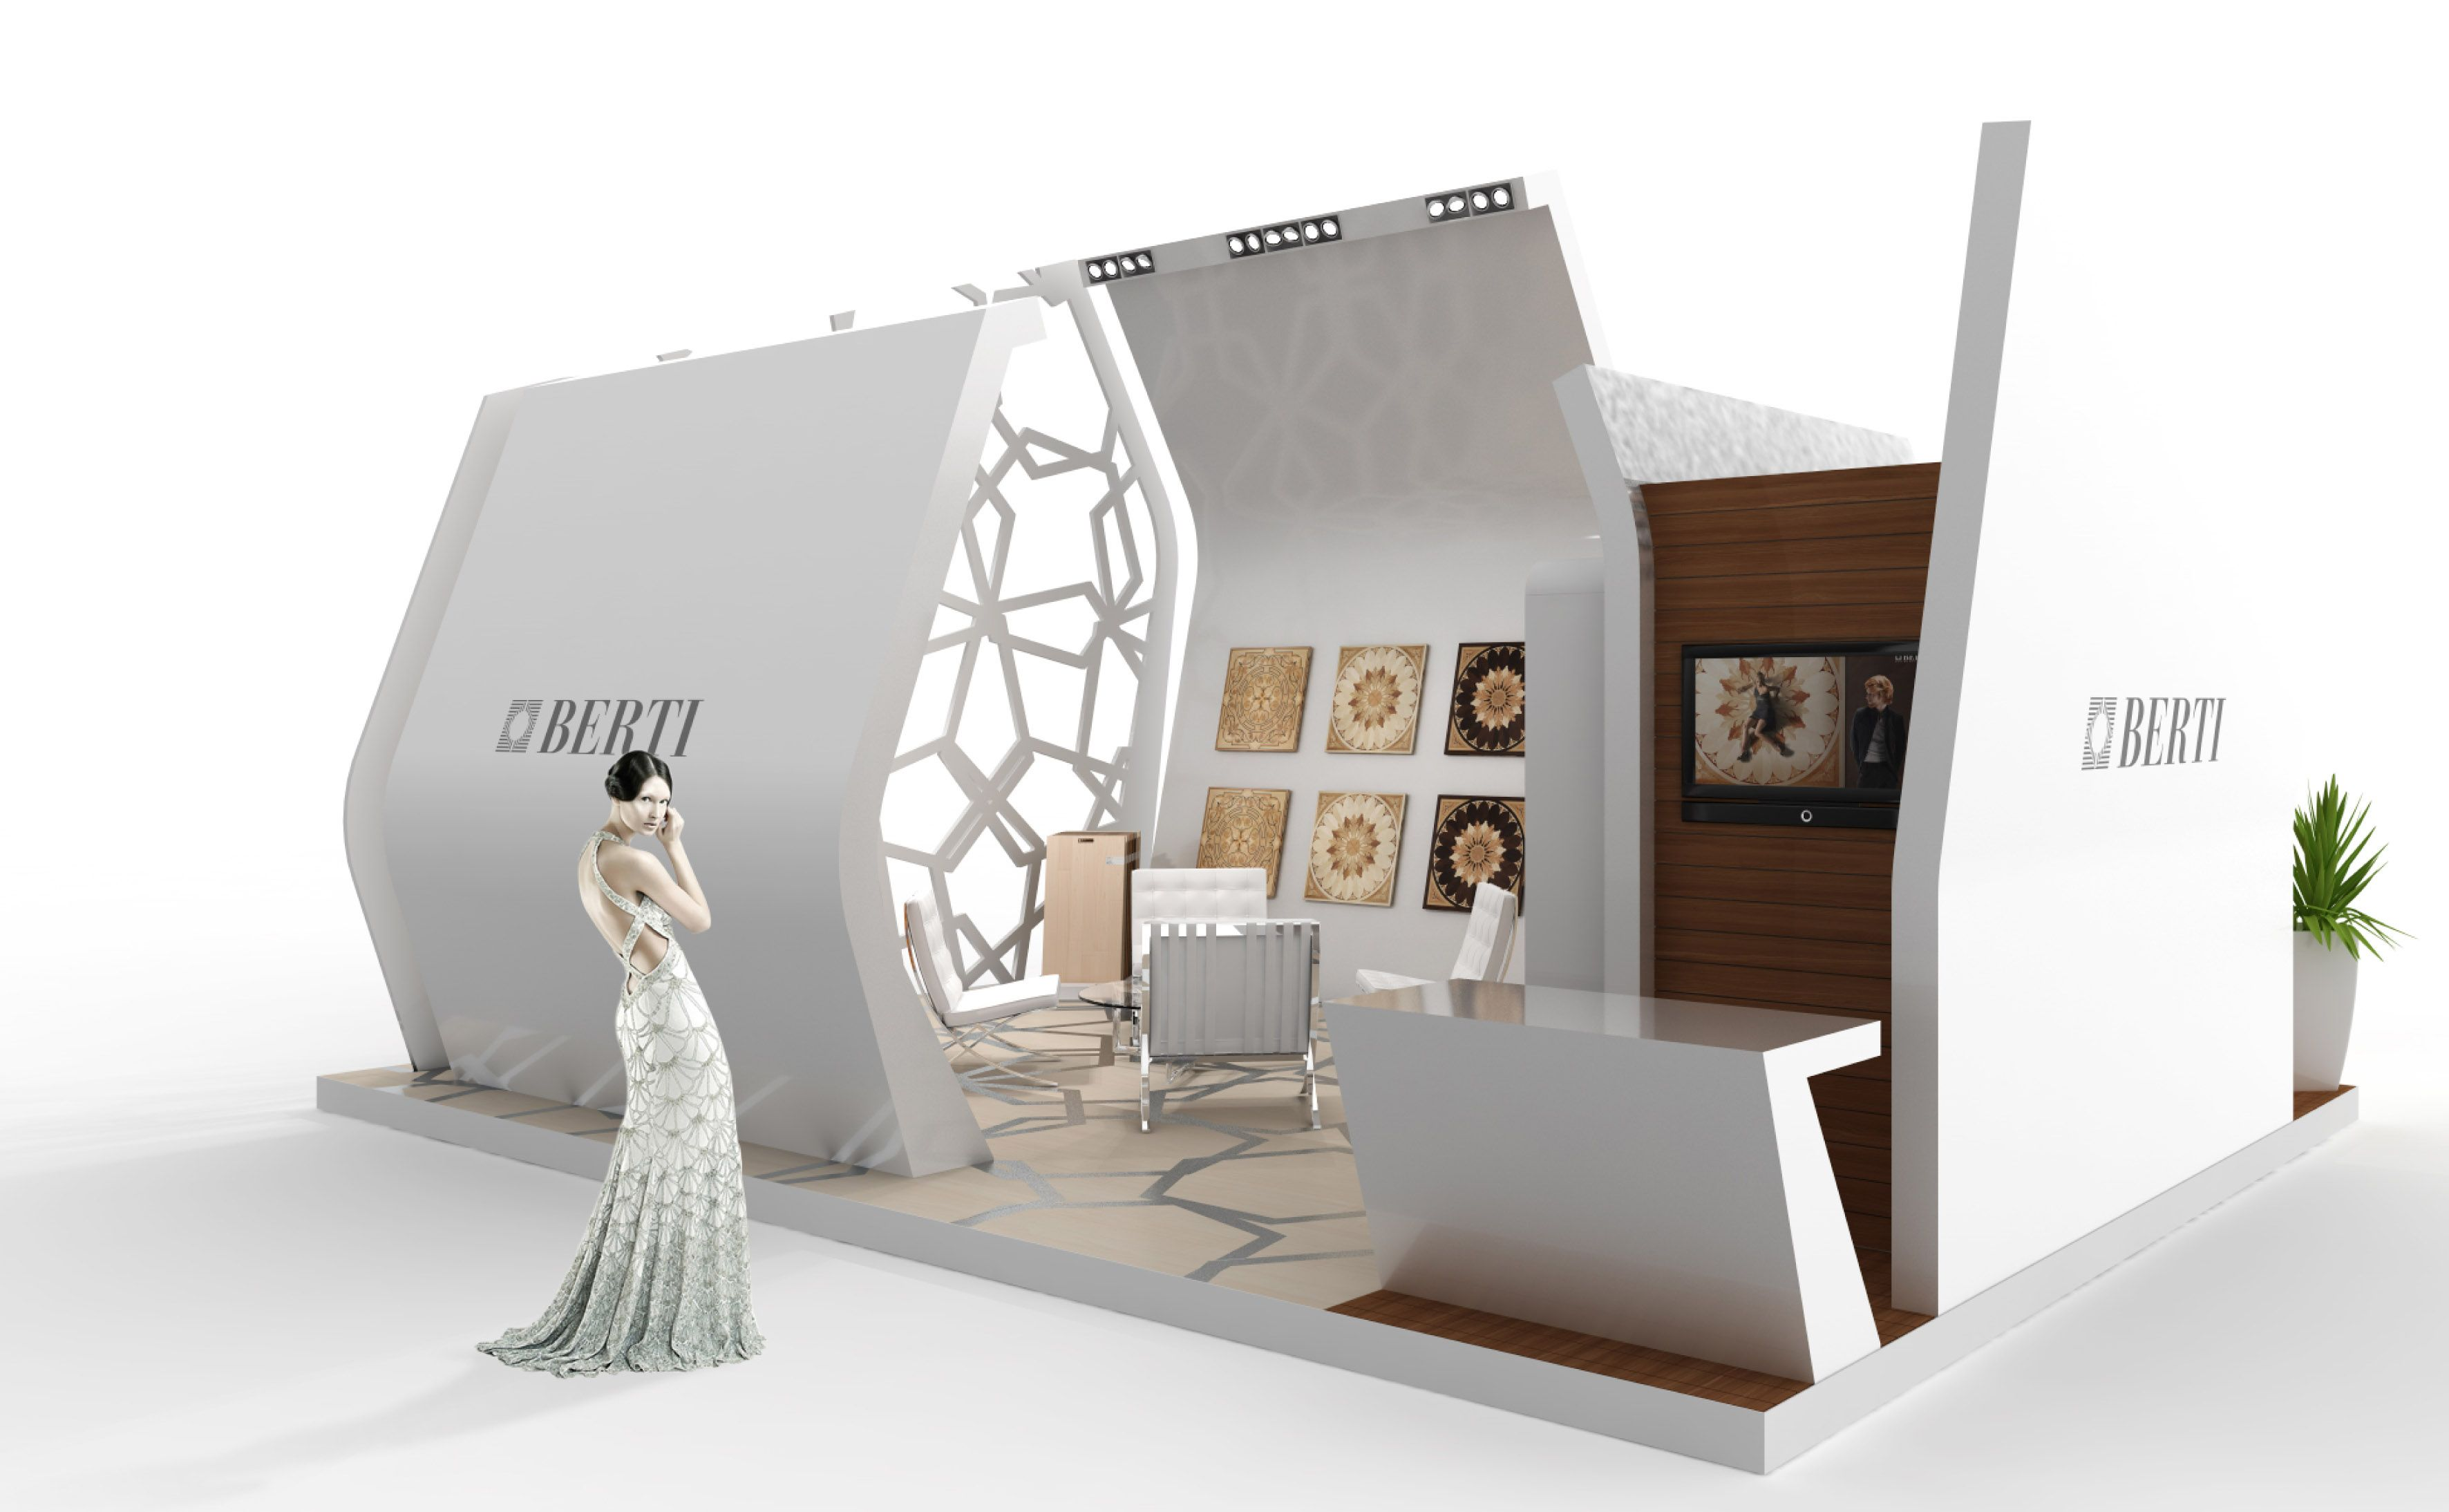 Exhibition Stand Marketing Ideas : Exhibition stands ideas google search